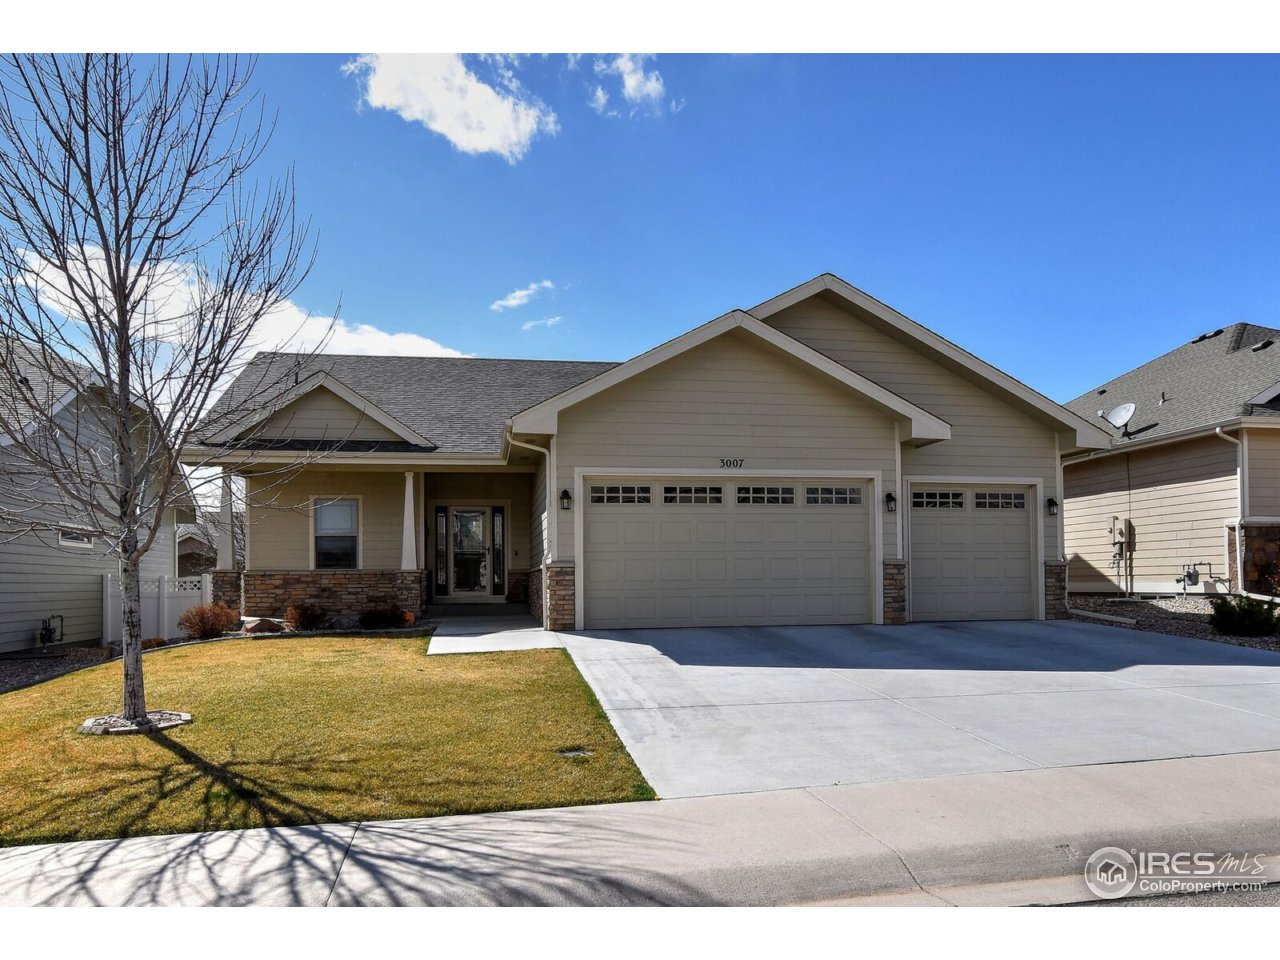 3007 68TH AVE, GREELEY, CO 80634